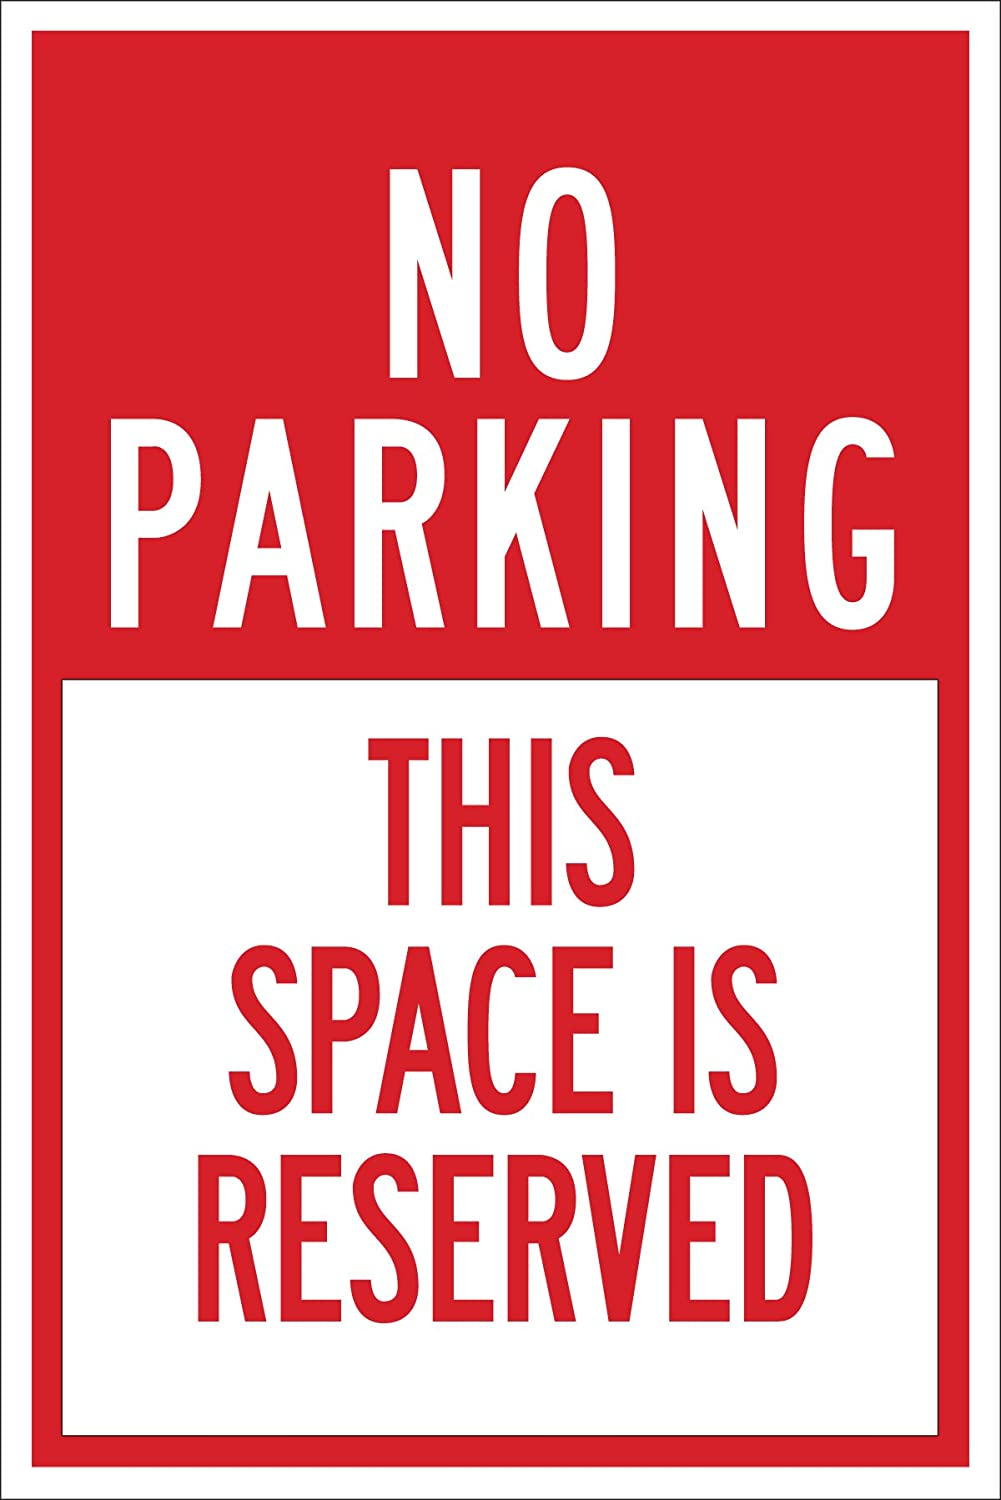 Brady 124337 Traffic Control Sign, Legend No Parking This Space Is Reserved, 18 Height, 12 Width, Red on White brady b 401 polystyrene rectangle white personal hygiene sign 14 in width x 10 in height text this is your wash room please help keep it clean 22856 [price is per each]